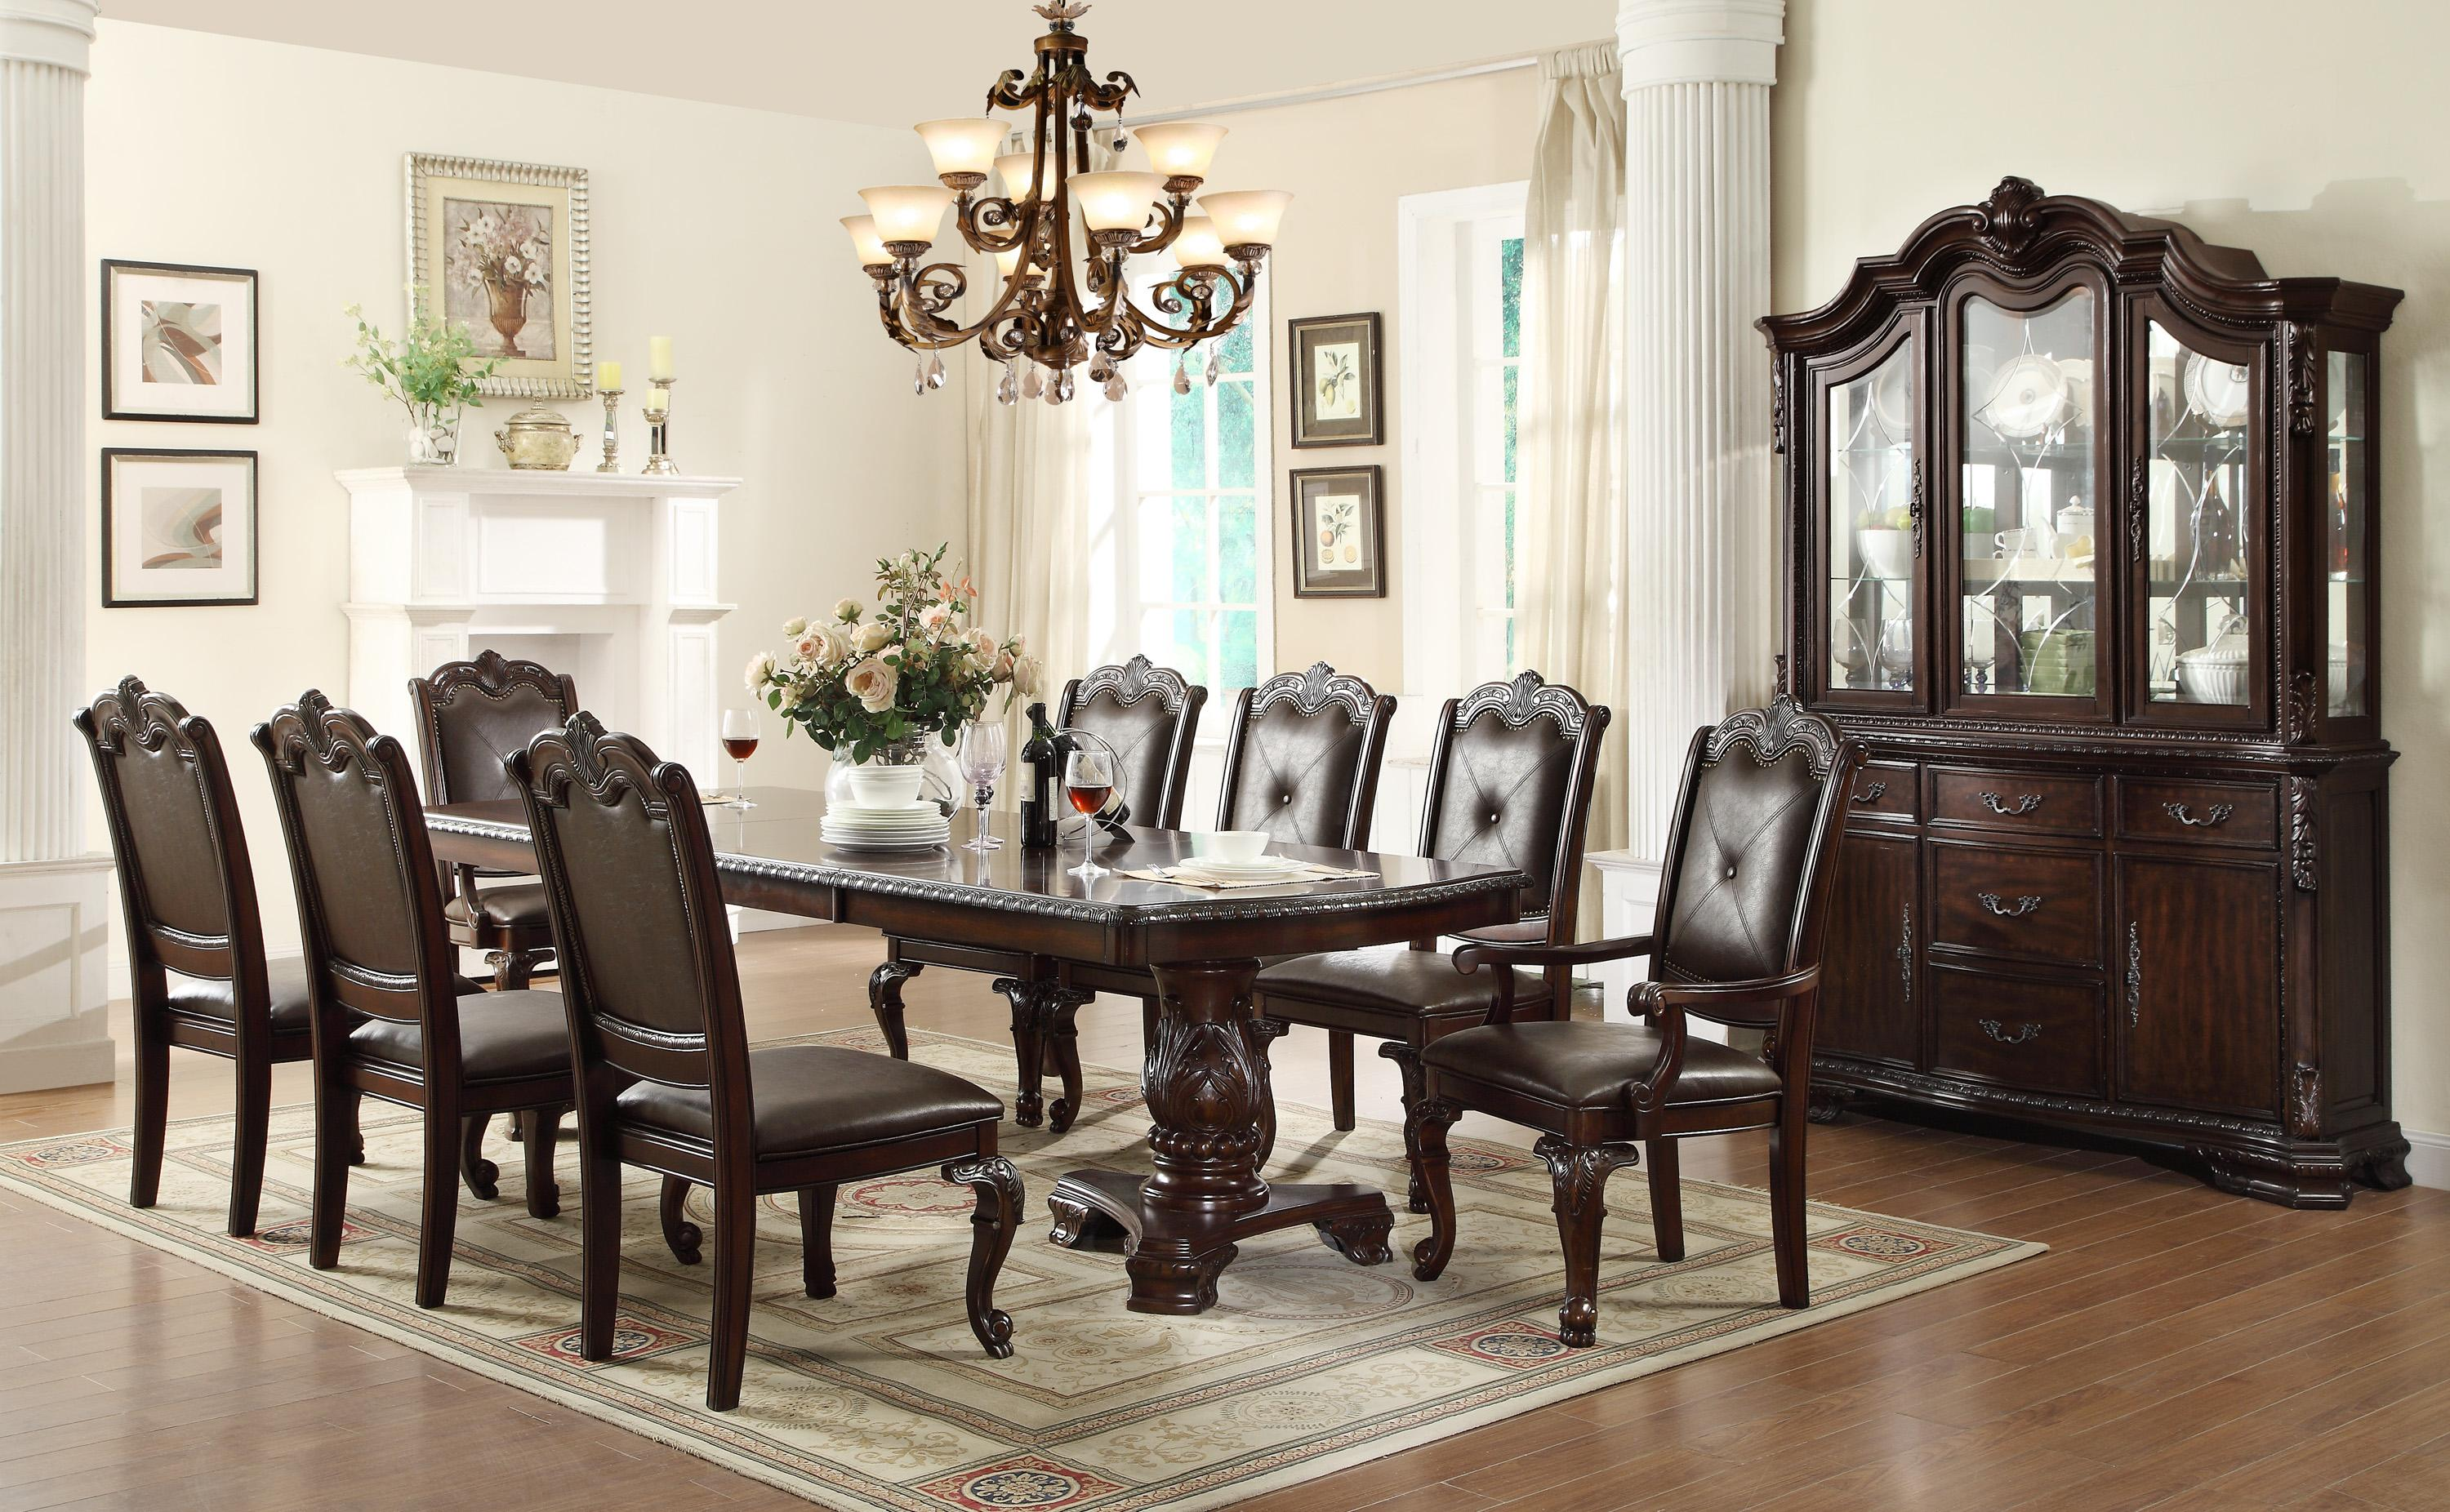 10 Seat Dining Table Set Crown Mark Kiera Traditonal Dining Table Set With 2 Arm Chairs And